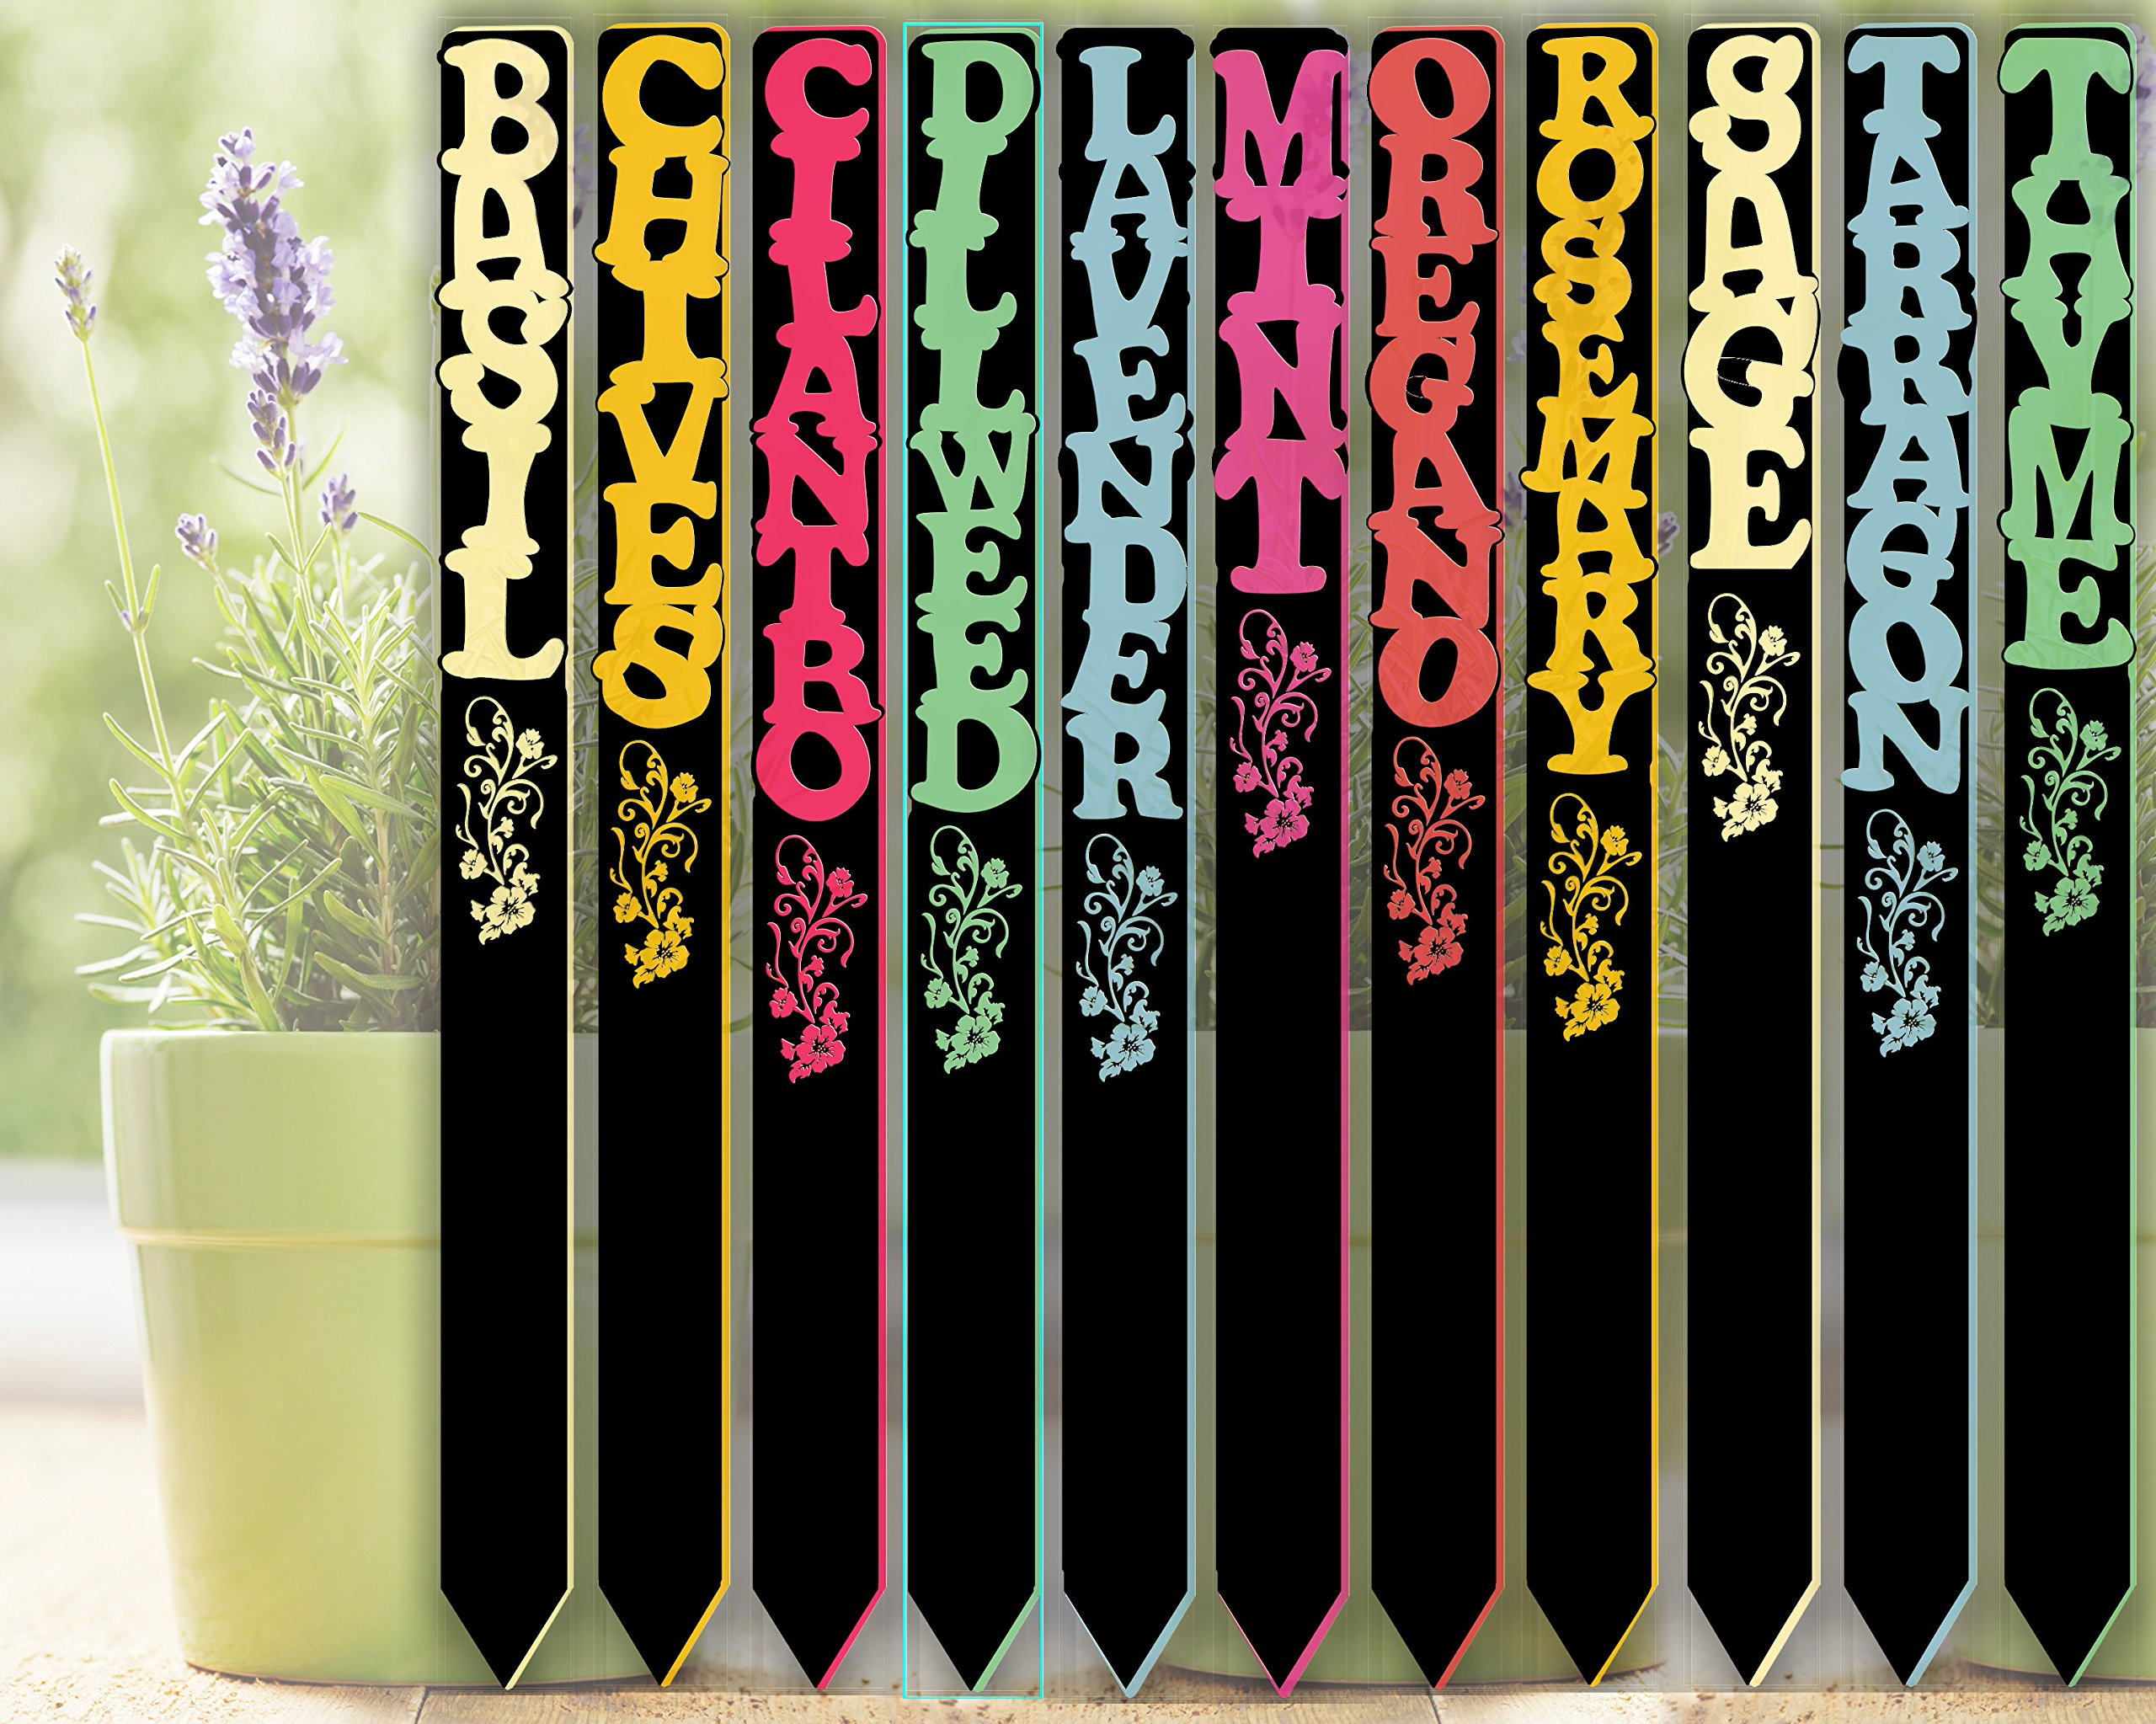 Red Tail Crafters Herb Garden Stakes Vertical Text 08in 12/set Colorful Acrylic Plant Markers